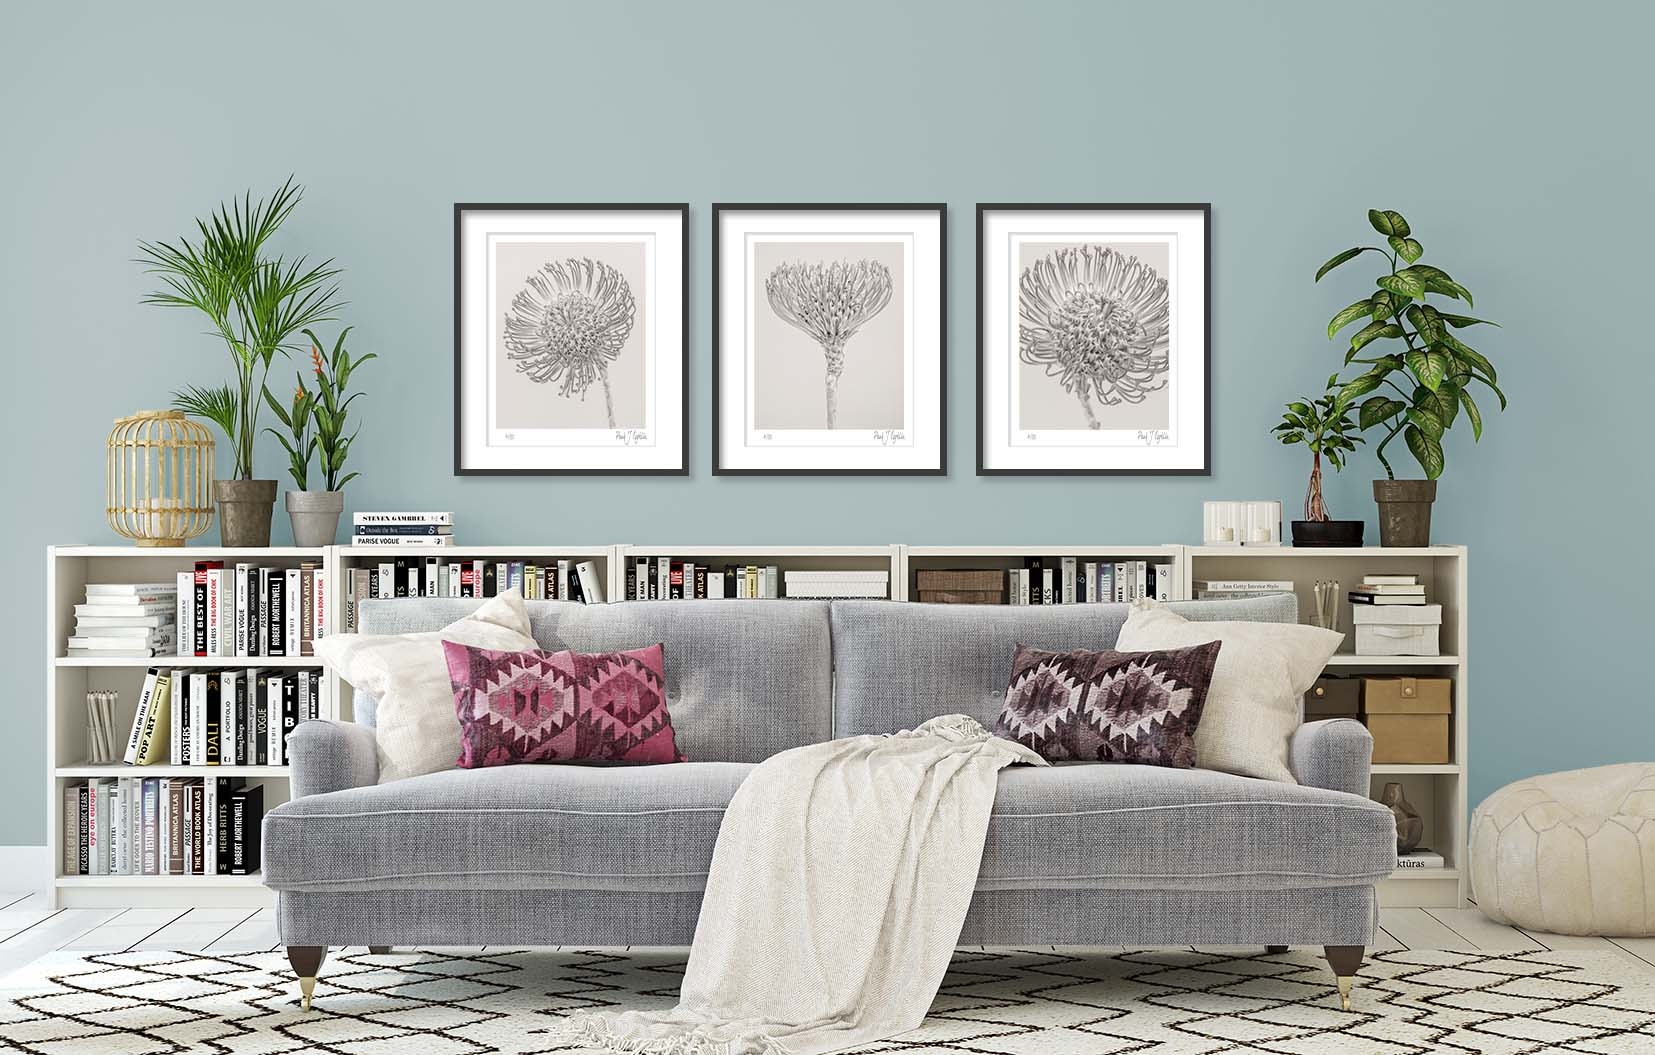 Leucospermum cordifolium (Protea) I, II + III. Monochrome prints of the South African Protea by award-winning fine art photographer Paul Coghlin FBIPP. These prints are part of the floral series 'Botanic'.